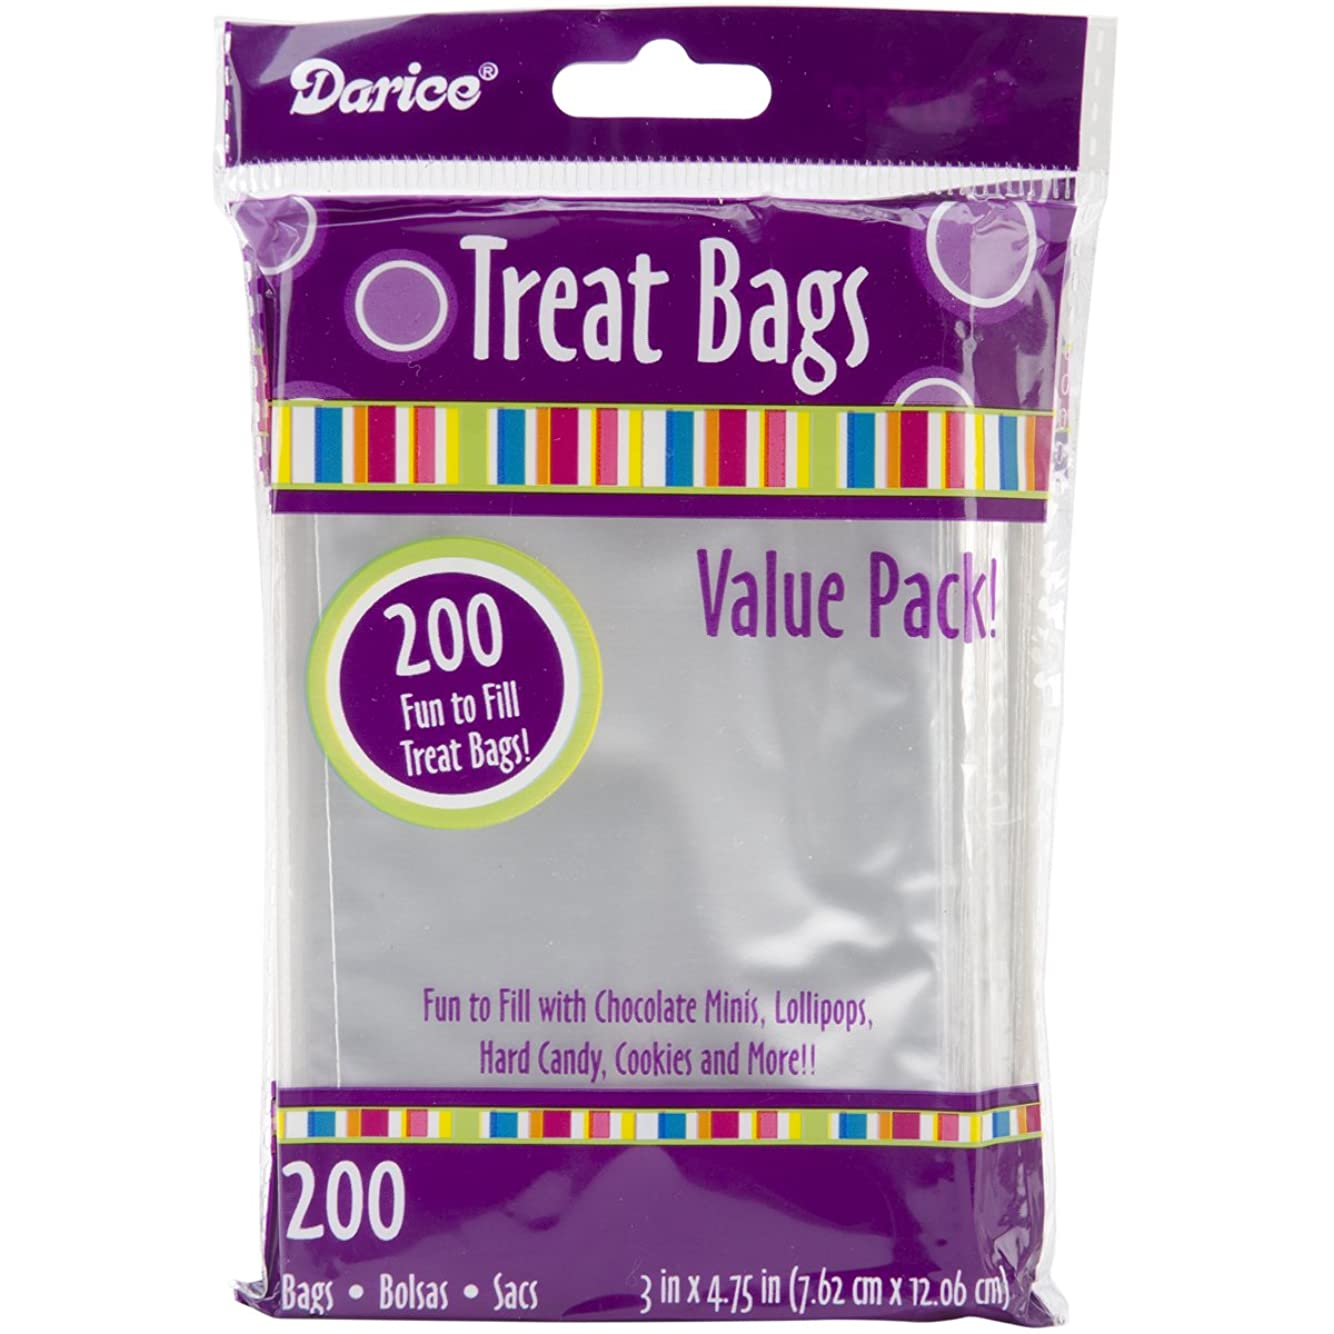 Darice Clear Value Pack, 3 x 4.75 inches, 200 Pieces Treat Bags, 3 by 4.75-Inch, Transparent